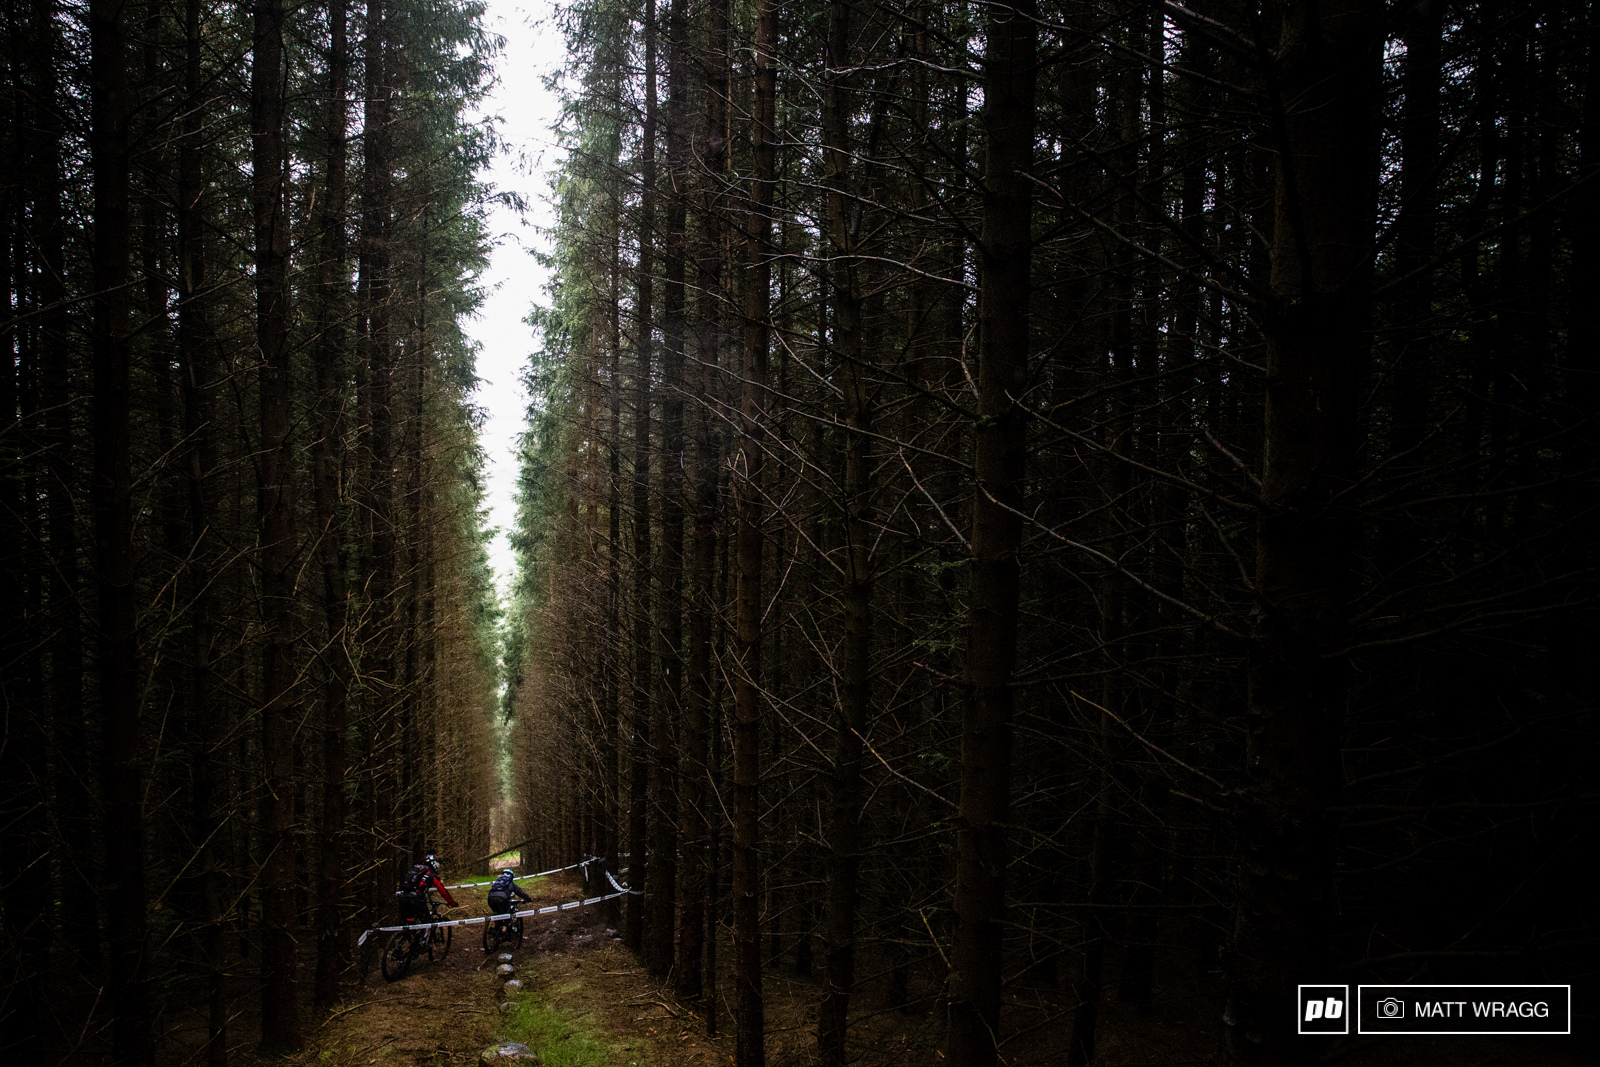 Riders pass through the clear cut in the dark dense forest on stage four.